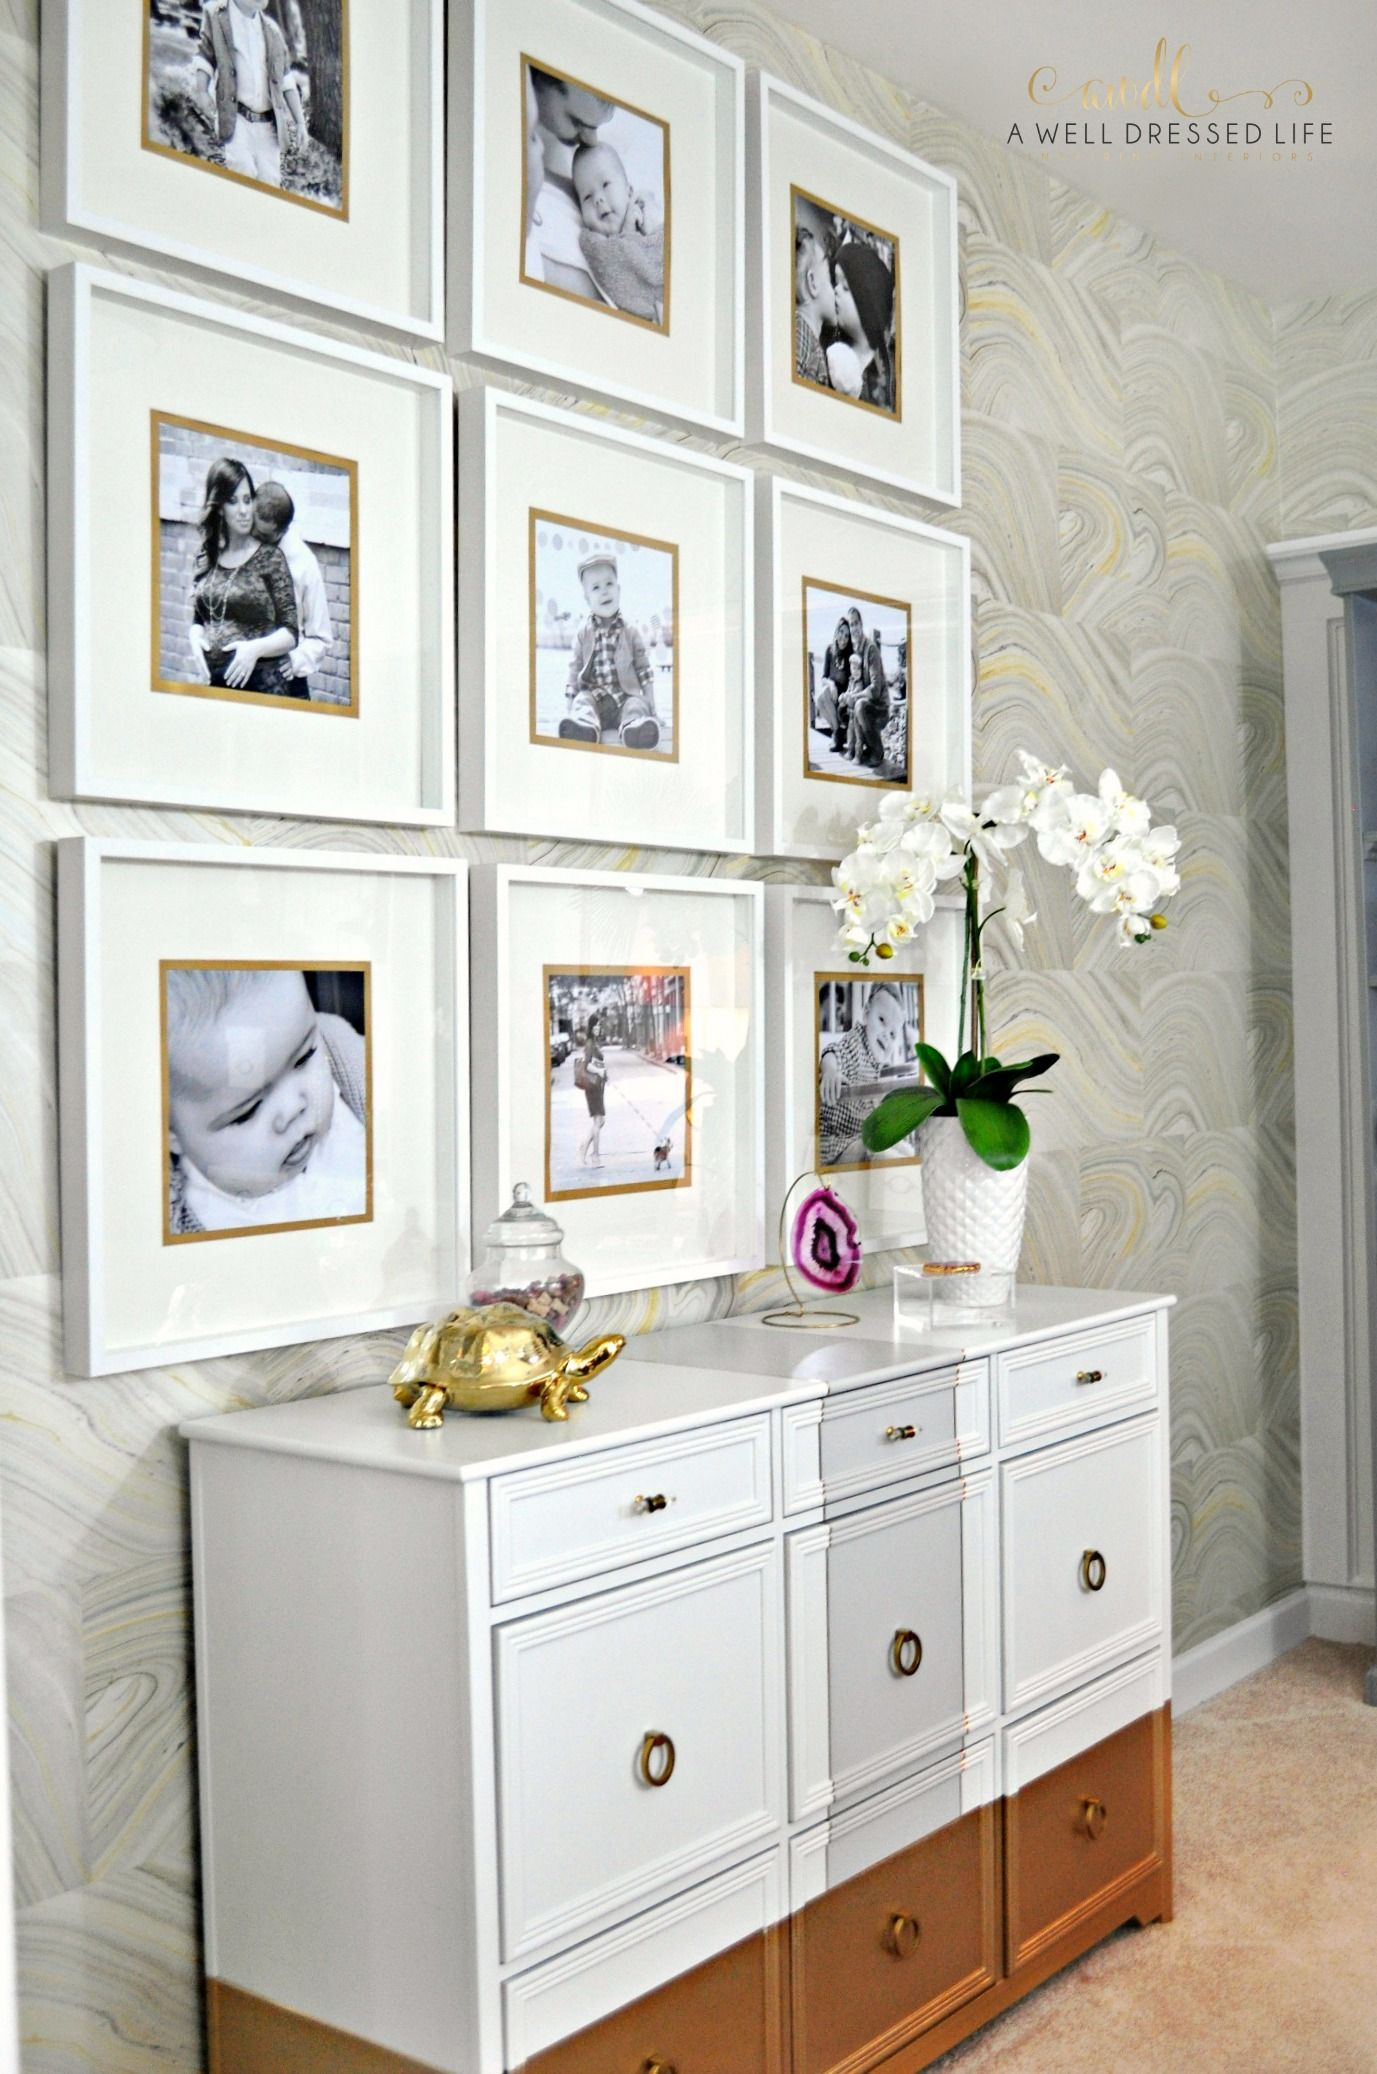 Ideas About Ikea Gallery Wall On Pinterest Using Gold Colored Card Stock Behind Photos And Under The Matting For A Little E Ikea Picture Frame Decor Home Decor